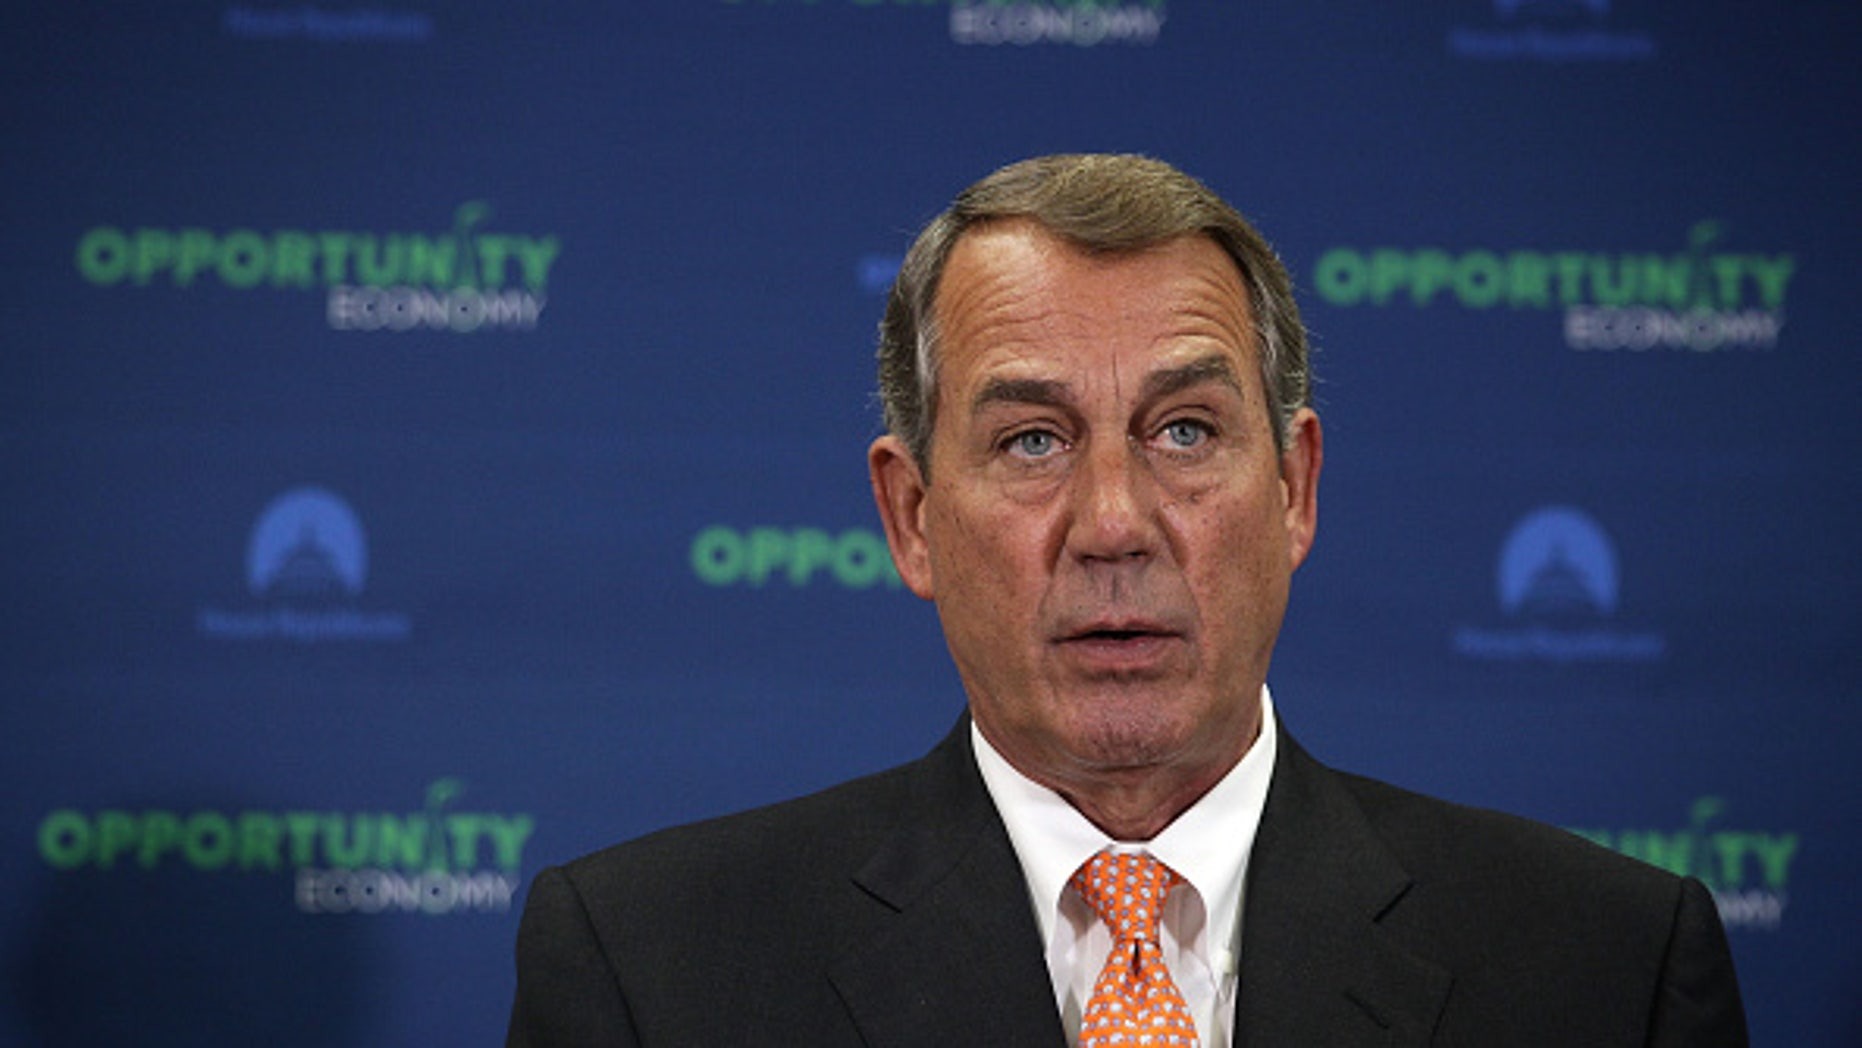 WASHINGTON, DC - JULY 08:  U.S. Speaker of the House John Boehner speaks during a media availability July 8, 2015 at the U.S. Capitol on Capitol Hill in Washington, DC. The House Republican leadership addressed the media after a House Republican Conference meeting.   (Photo by Alex Wong/Getty Images)